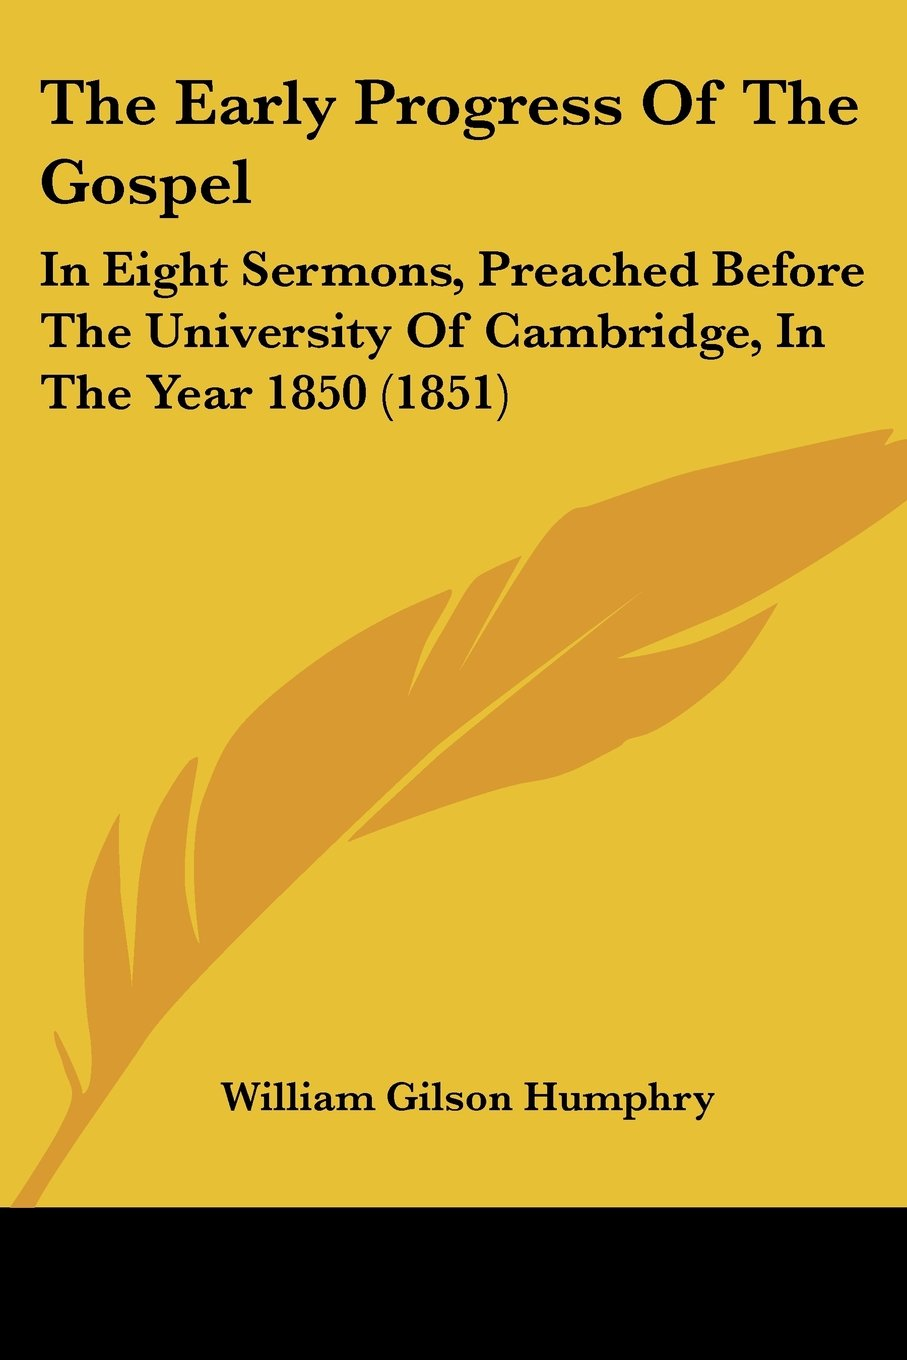 Download The Early Progress Of The Gospel: In Eight Sermons, Preached Before The University Of Cambridge, In The Year 1850 (1851) pdf